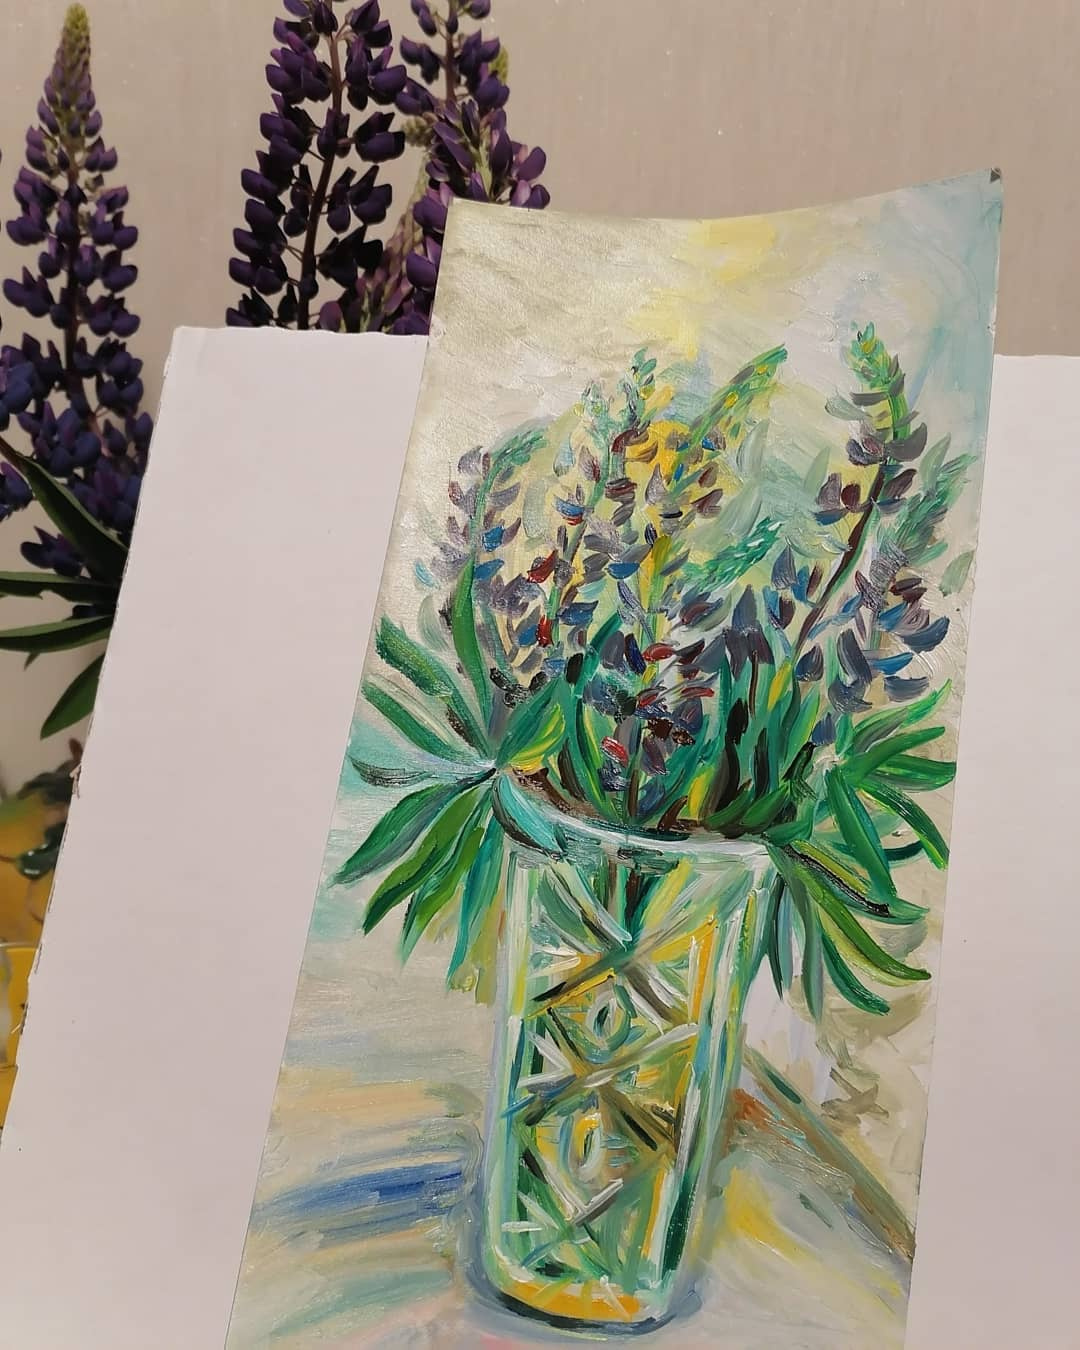 Lupins in a vase